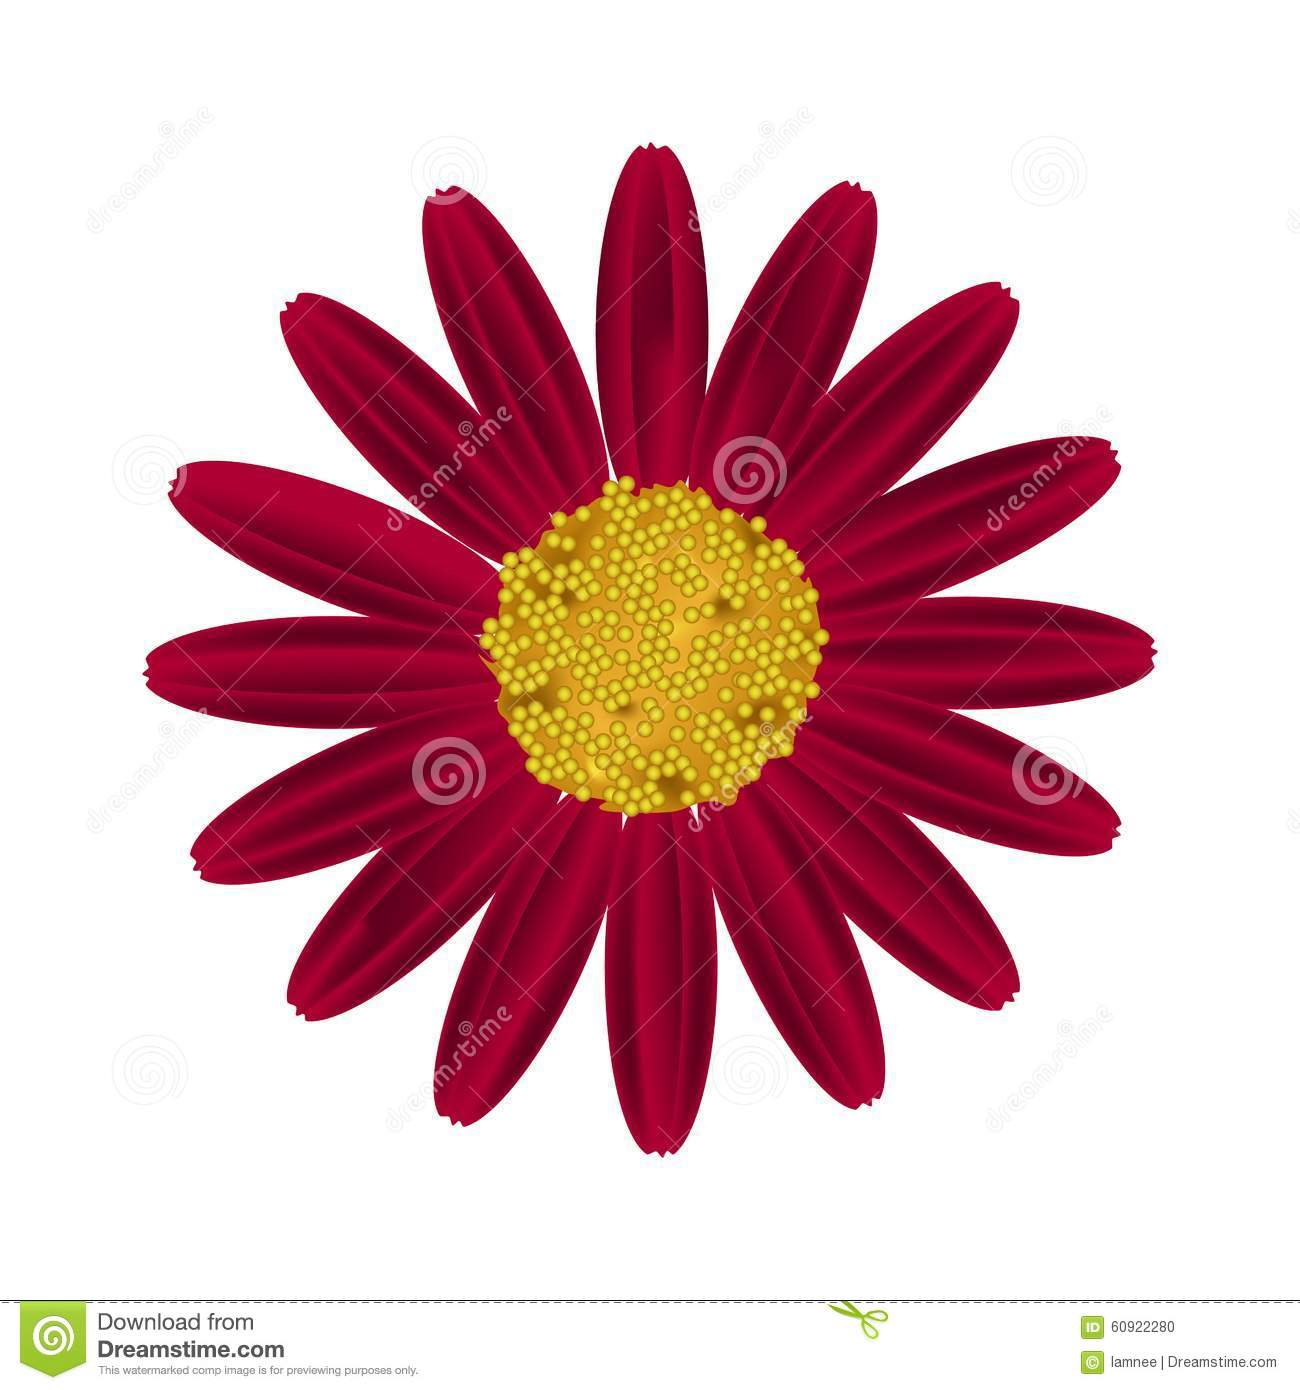 Red Daisy Flower On A White Background Stock Vector Illustration